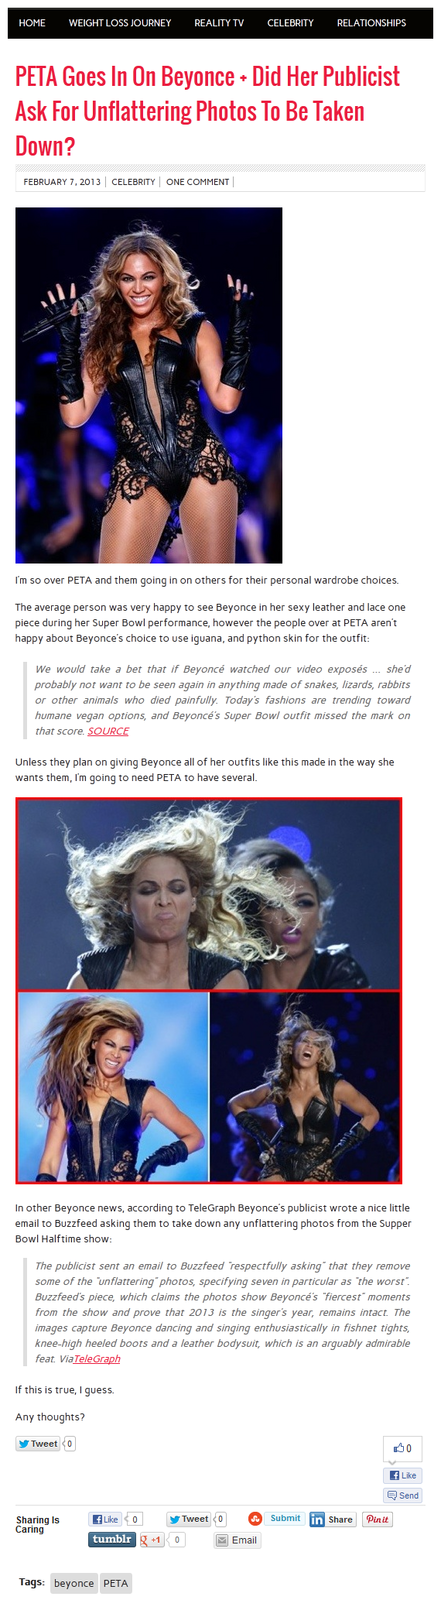 PETA Goes In On Beyonce